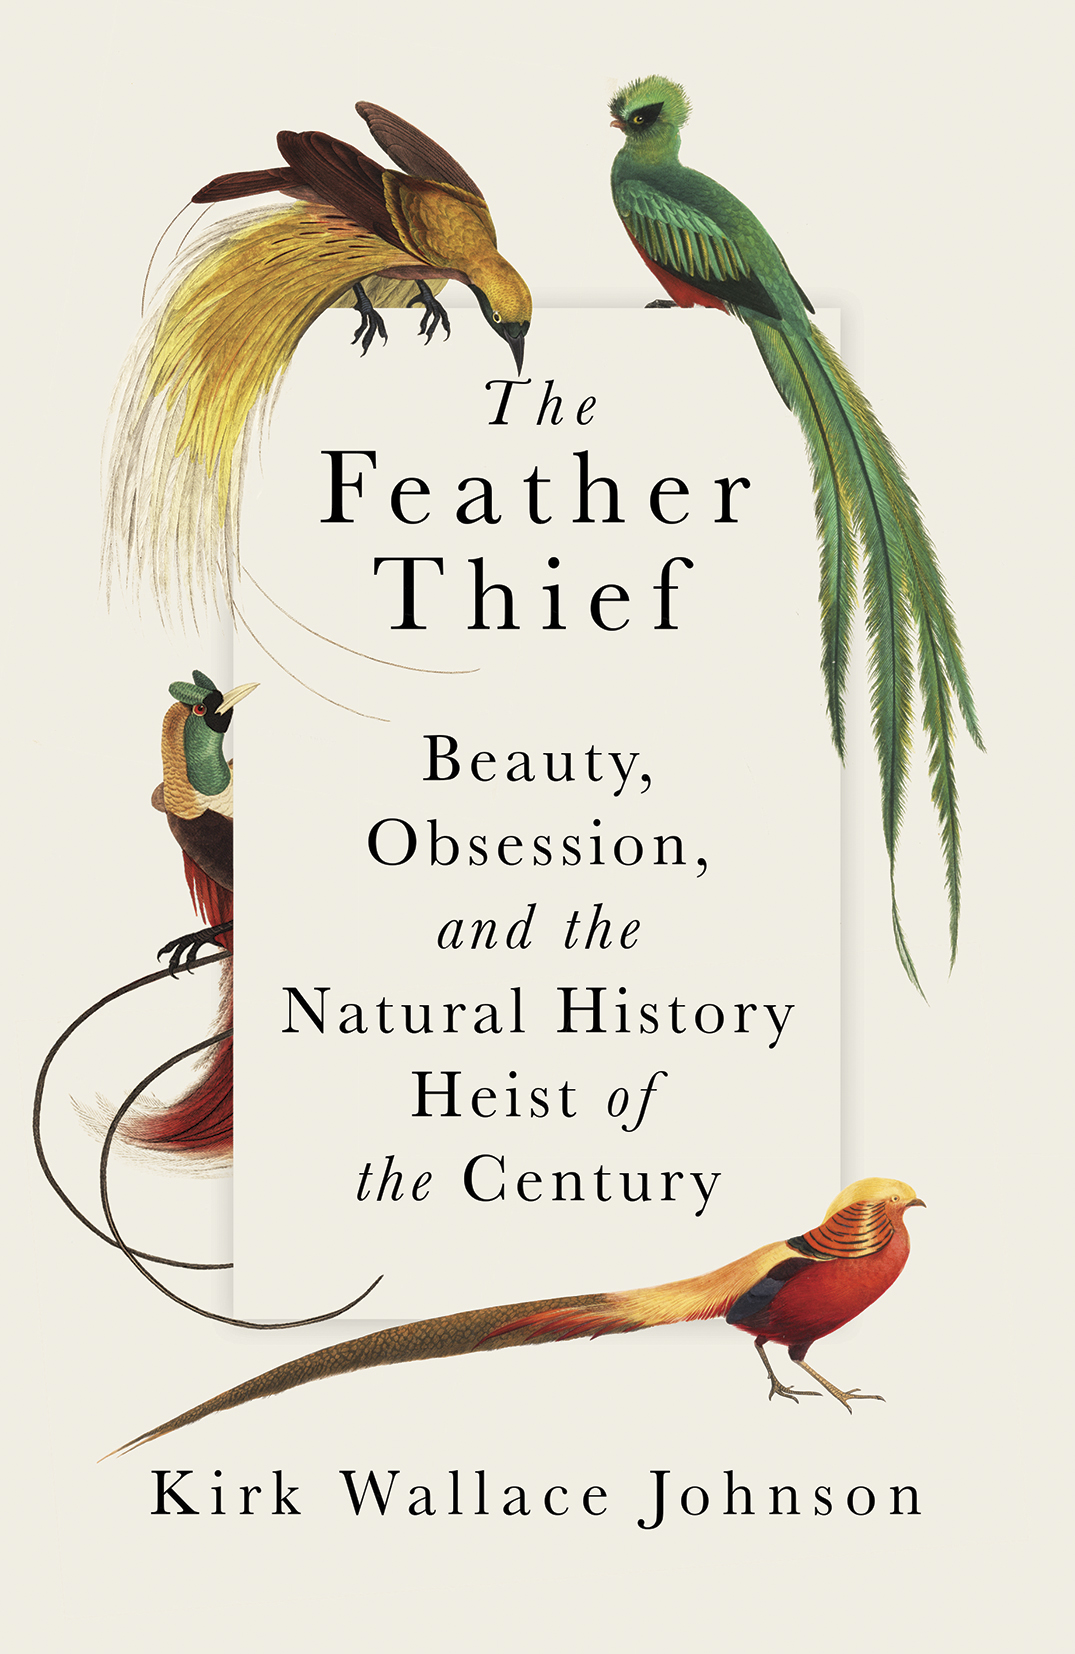 The Feather Thief 4.jpg